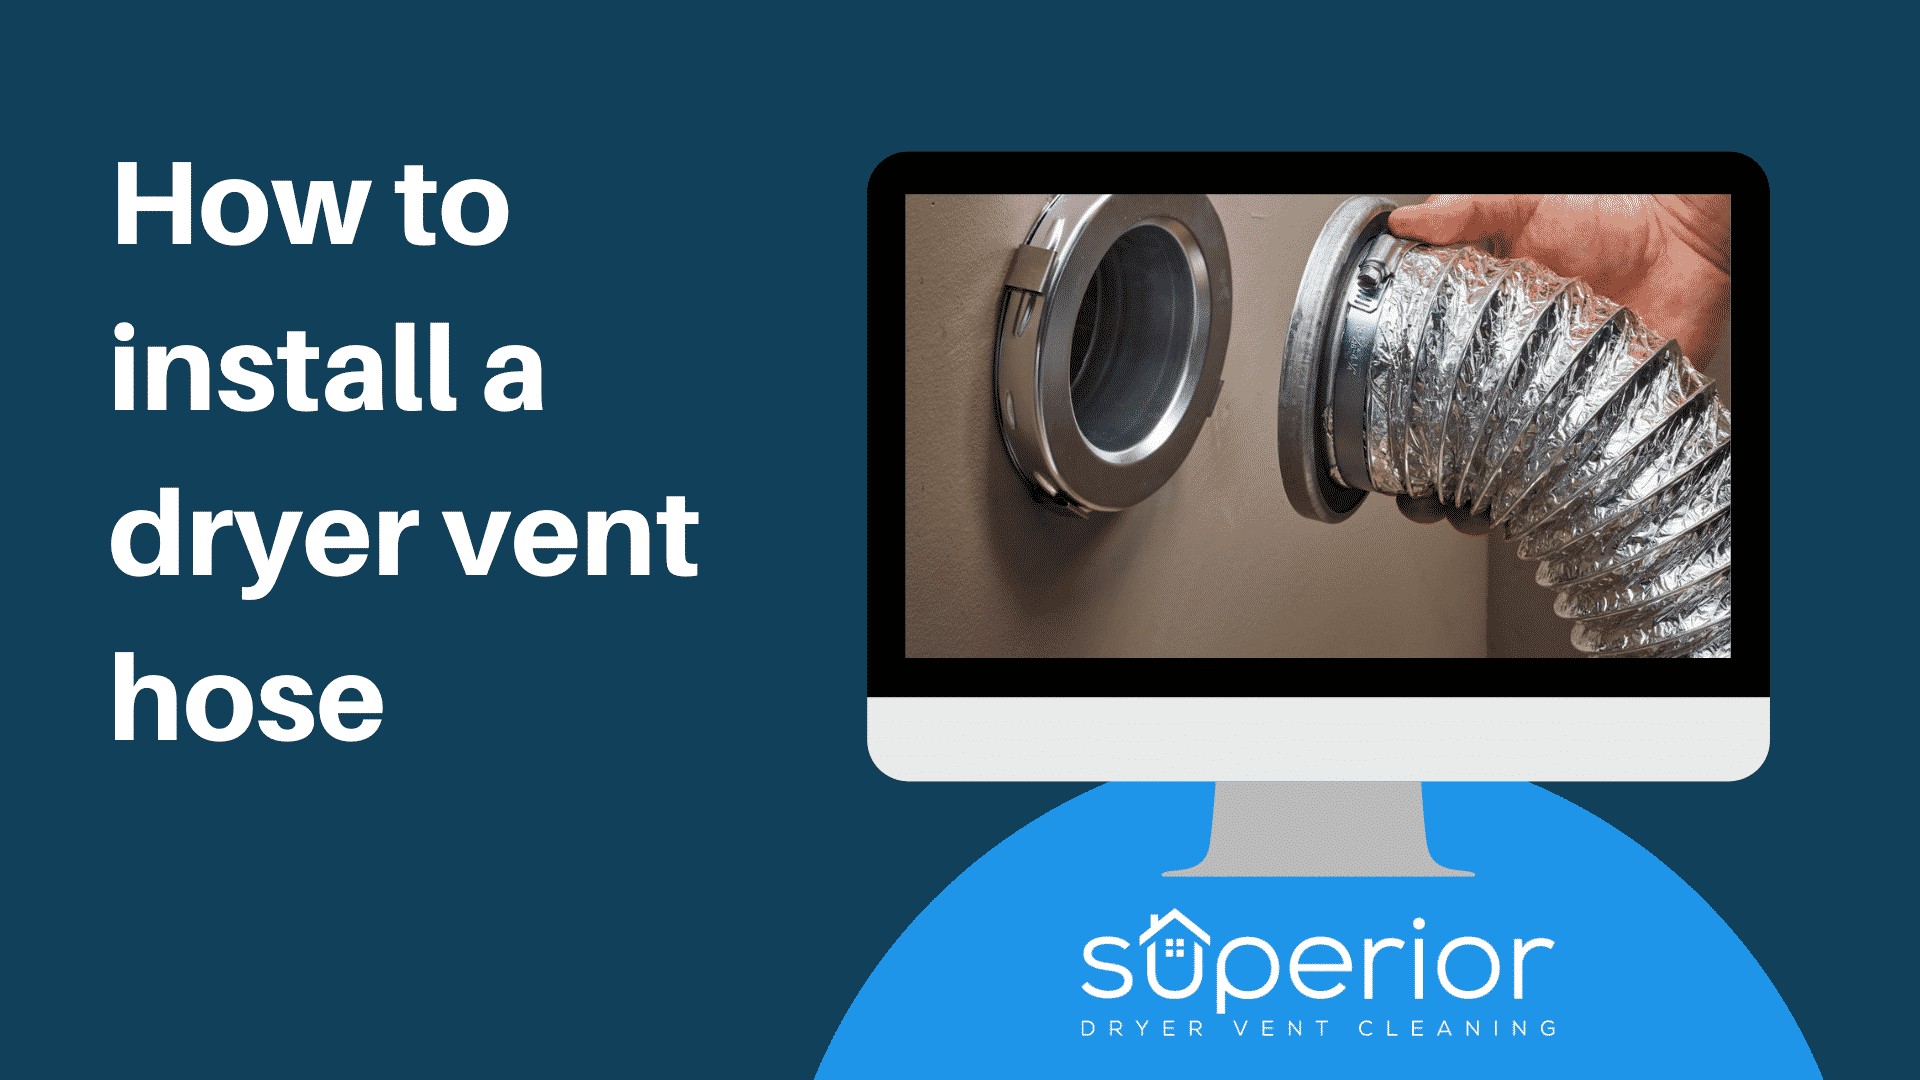 How to Install a Dryer Vent Hose